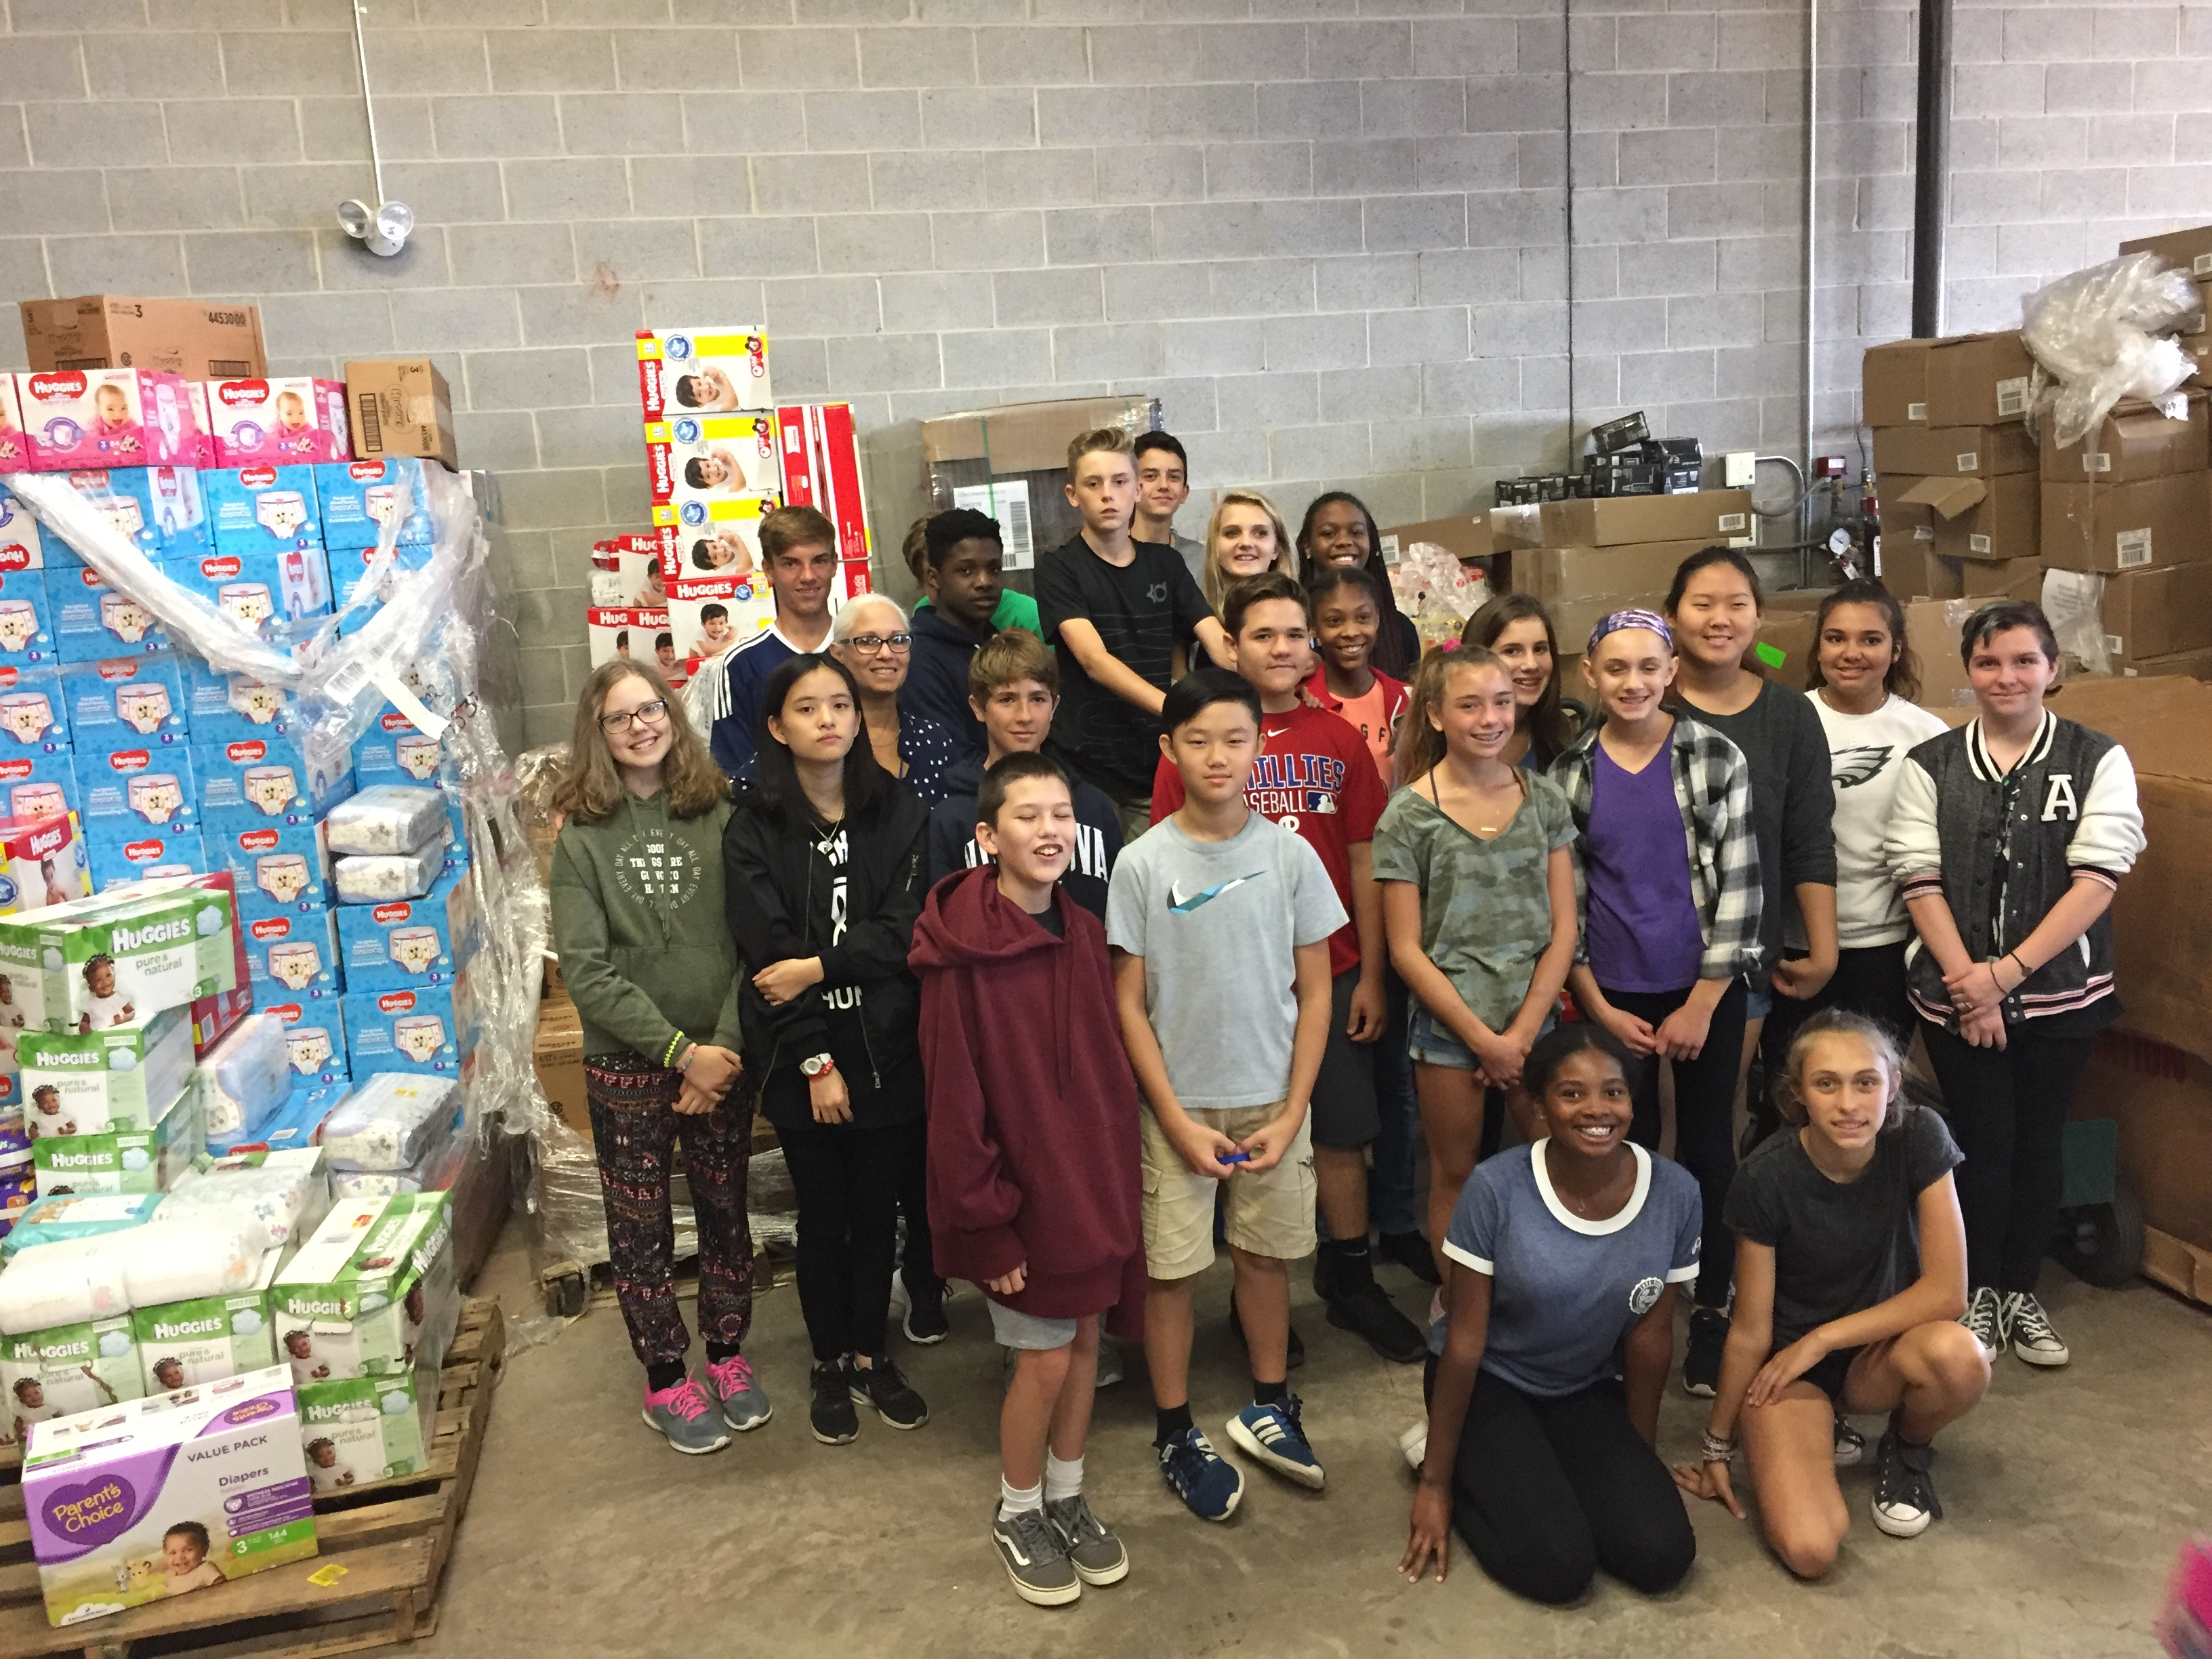 Group of approximately 20 kids in a warehouse